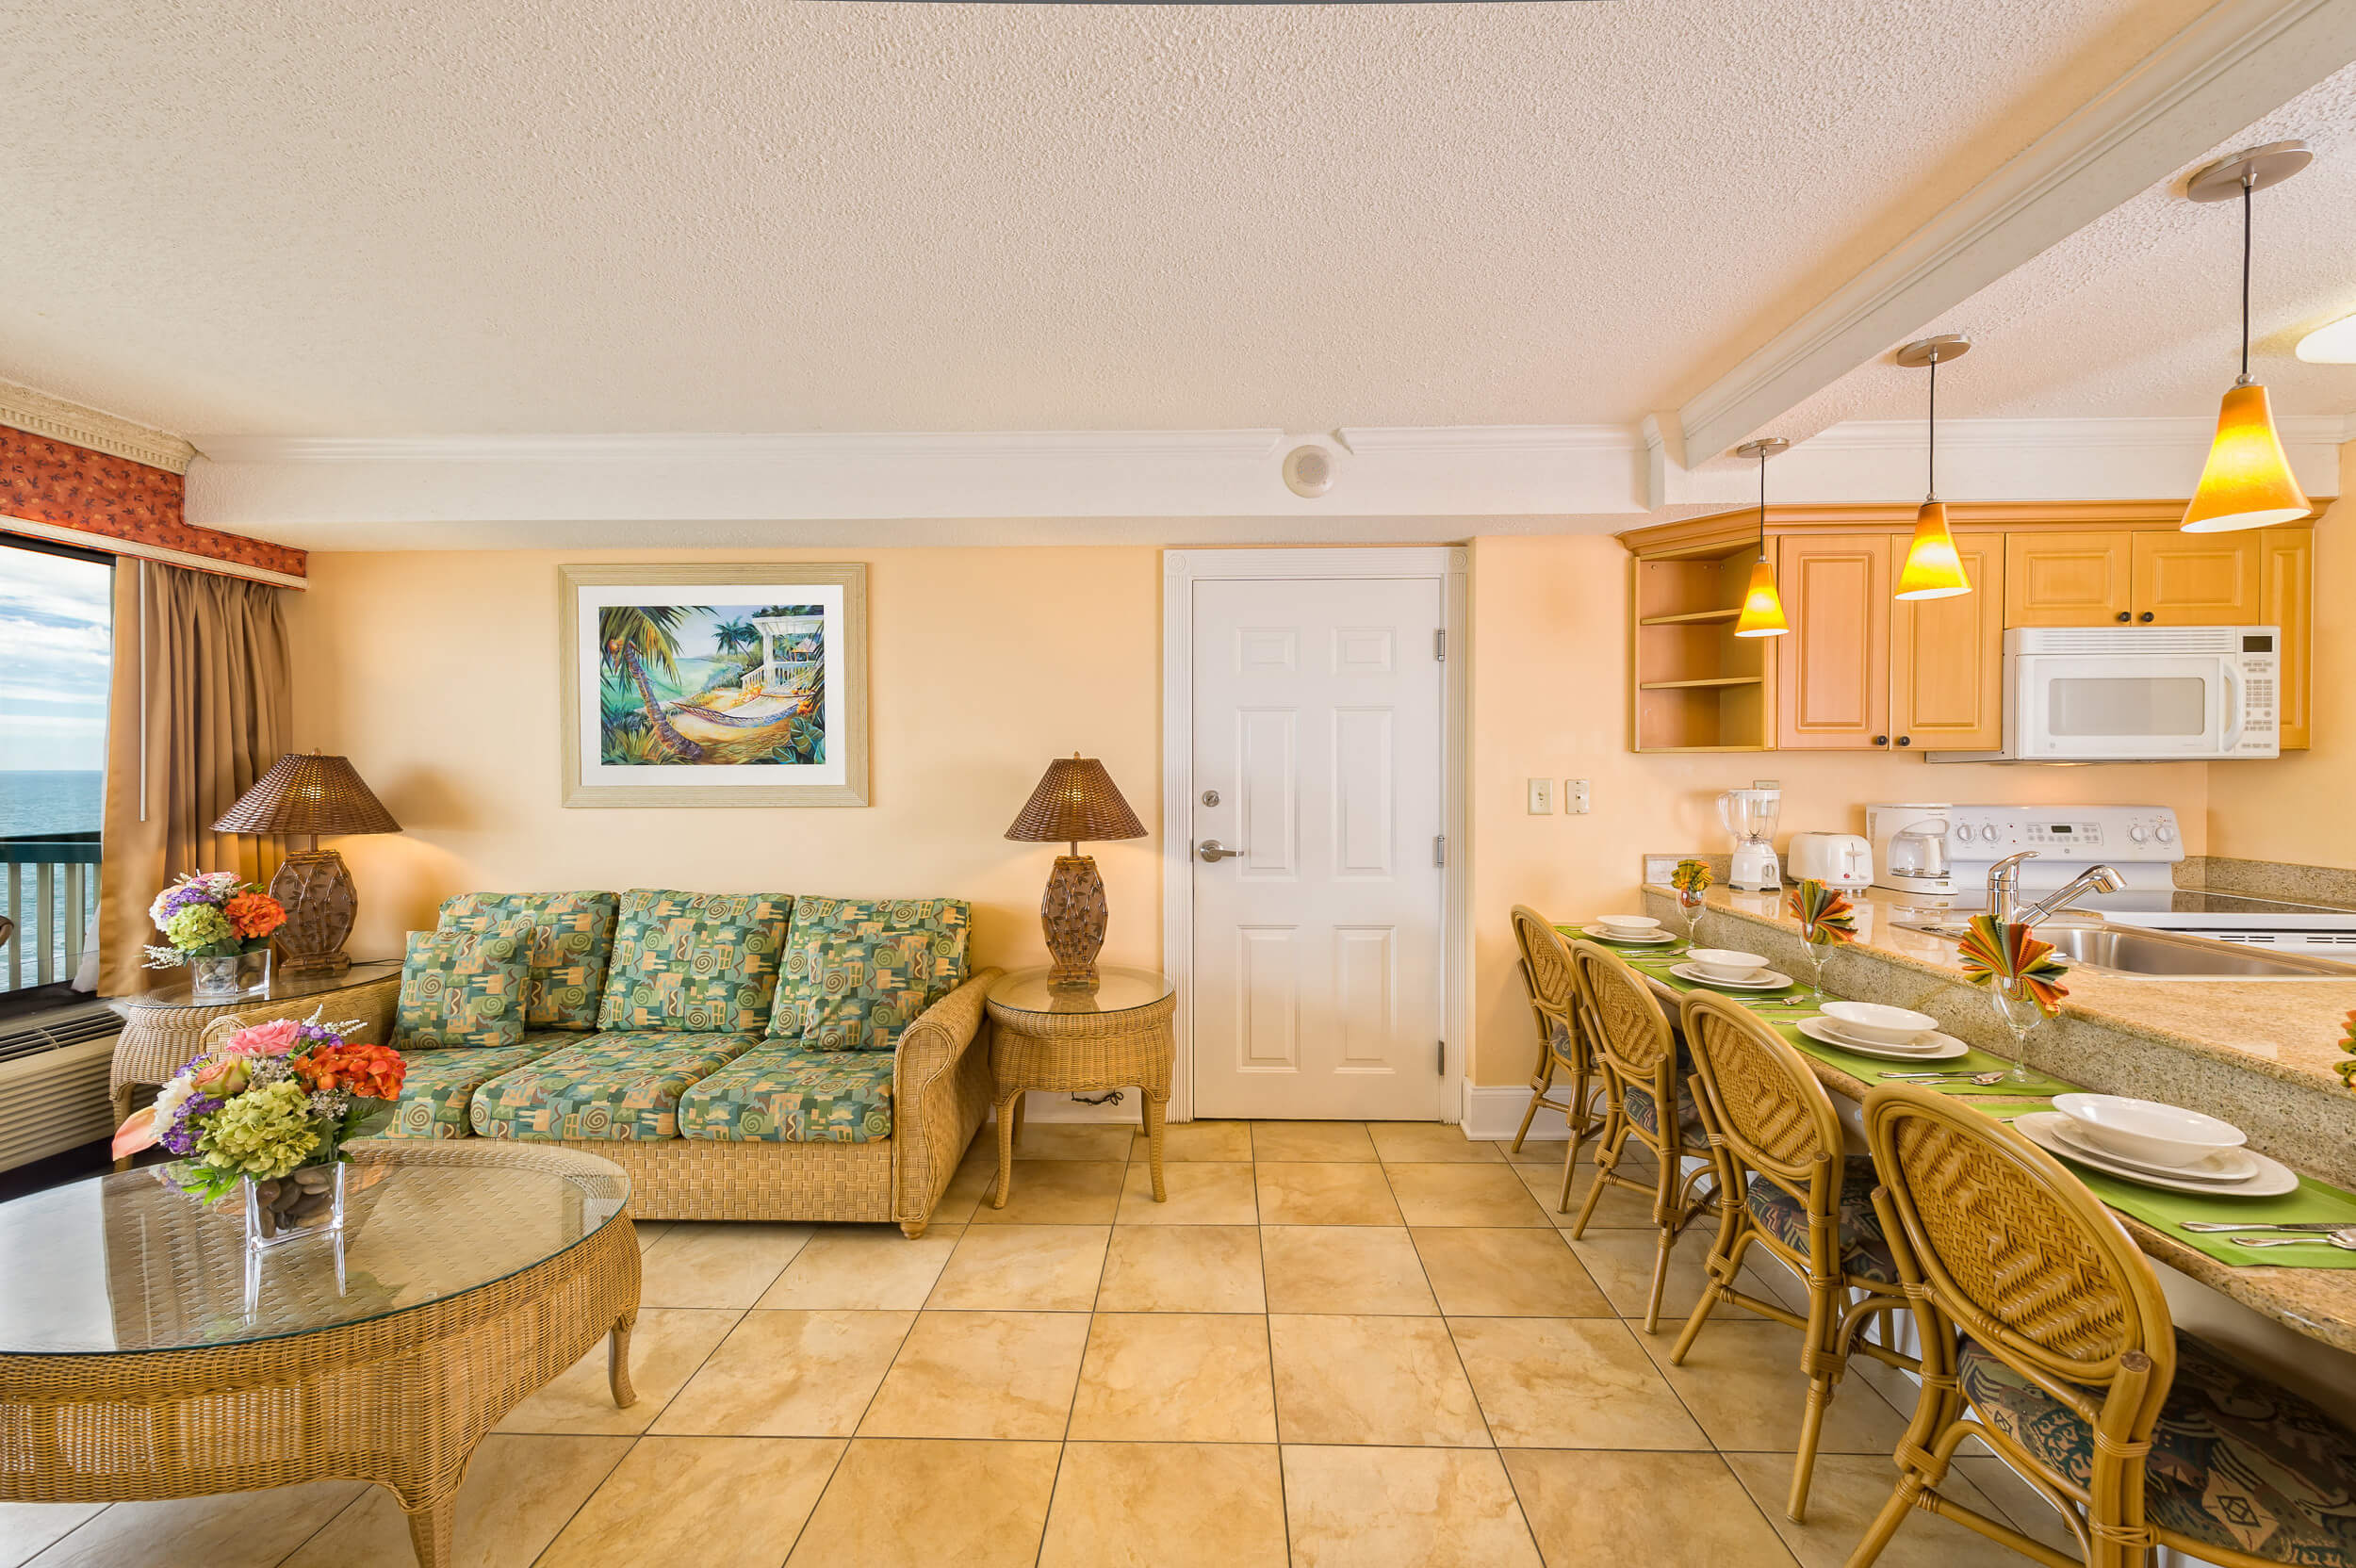 One-Bedroom Deluxe Oceanfront Villa | Westgate Myrtle Beach Oceanfront Resort | Westgate Resorts & Condos in Myrtle Beach